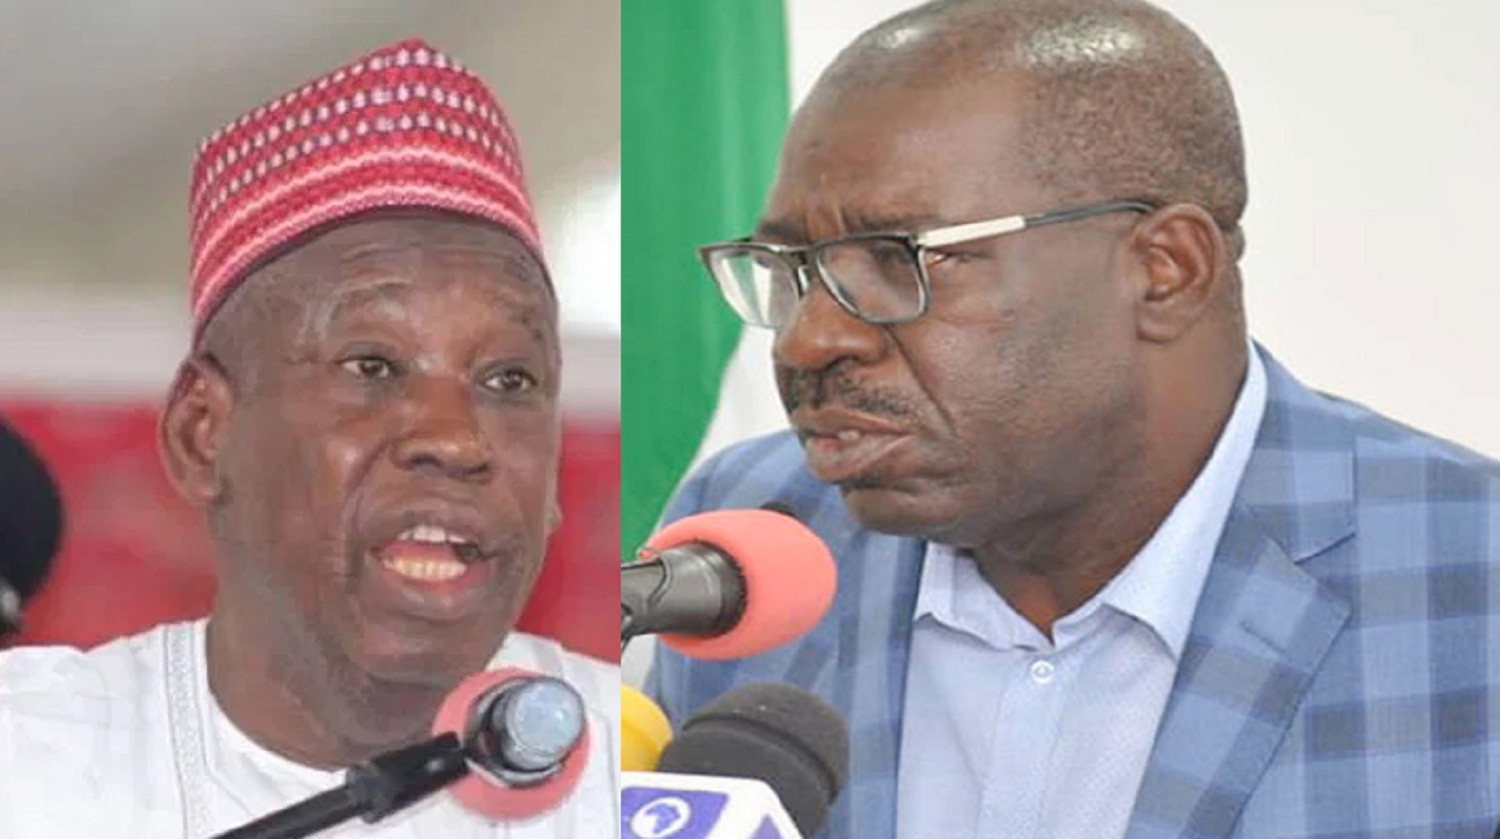 Governor Abdullahi Ganduje has supported the  All Progressive Congress governorship primary (APC) for disqualification of Governor Godwin Obaskei